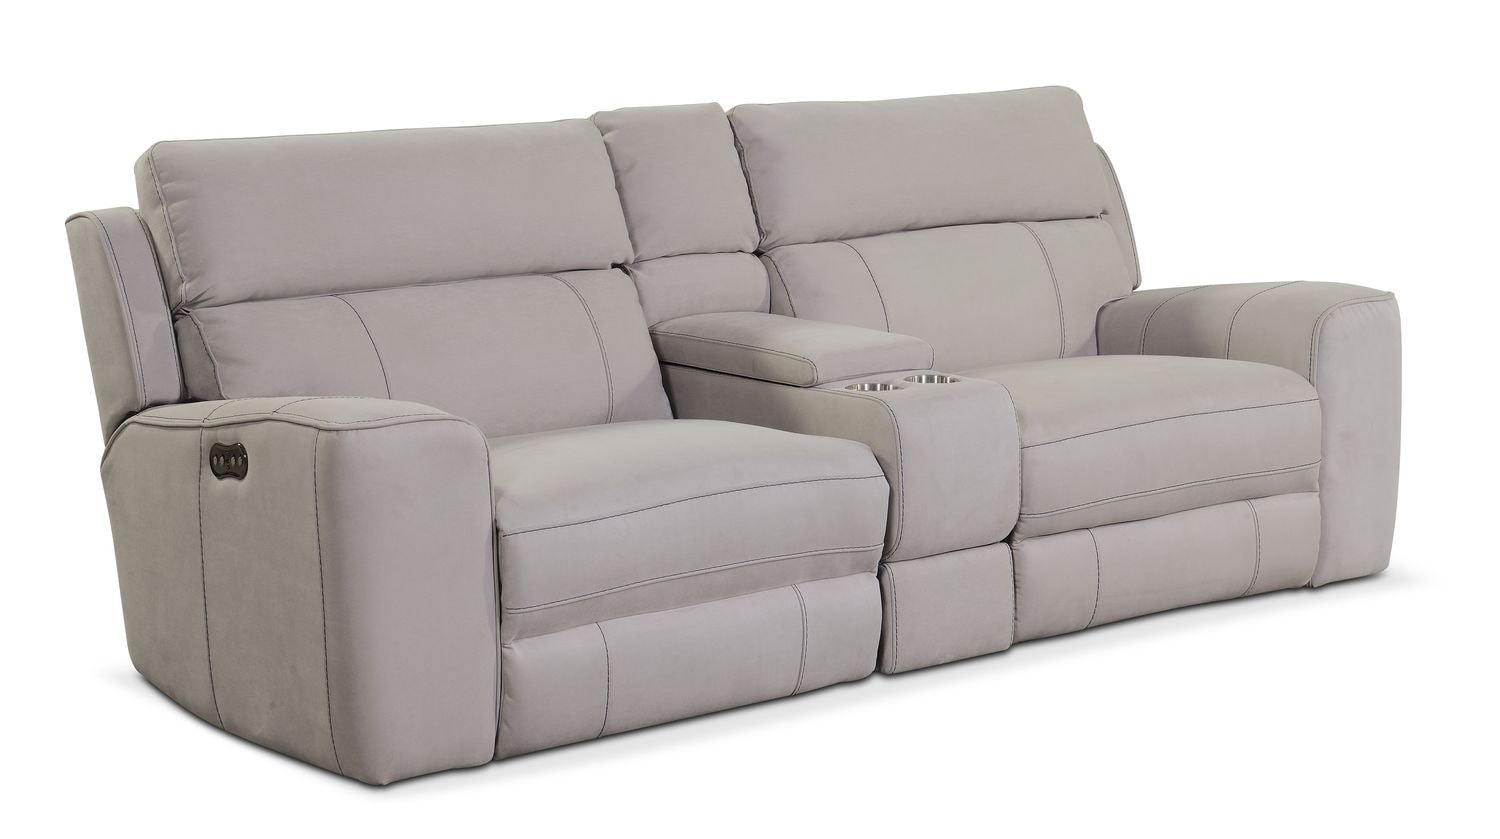 Newport 3 Piece Power Reclining Sofa With Console Light